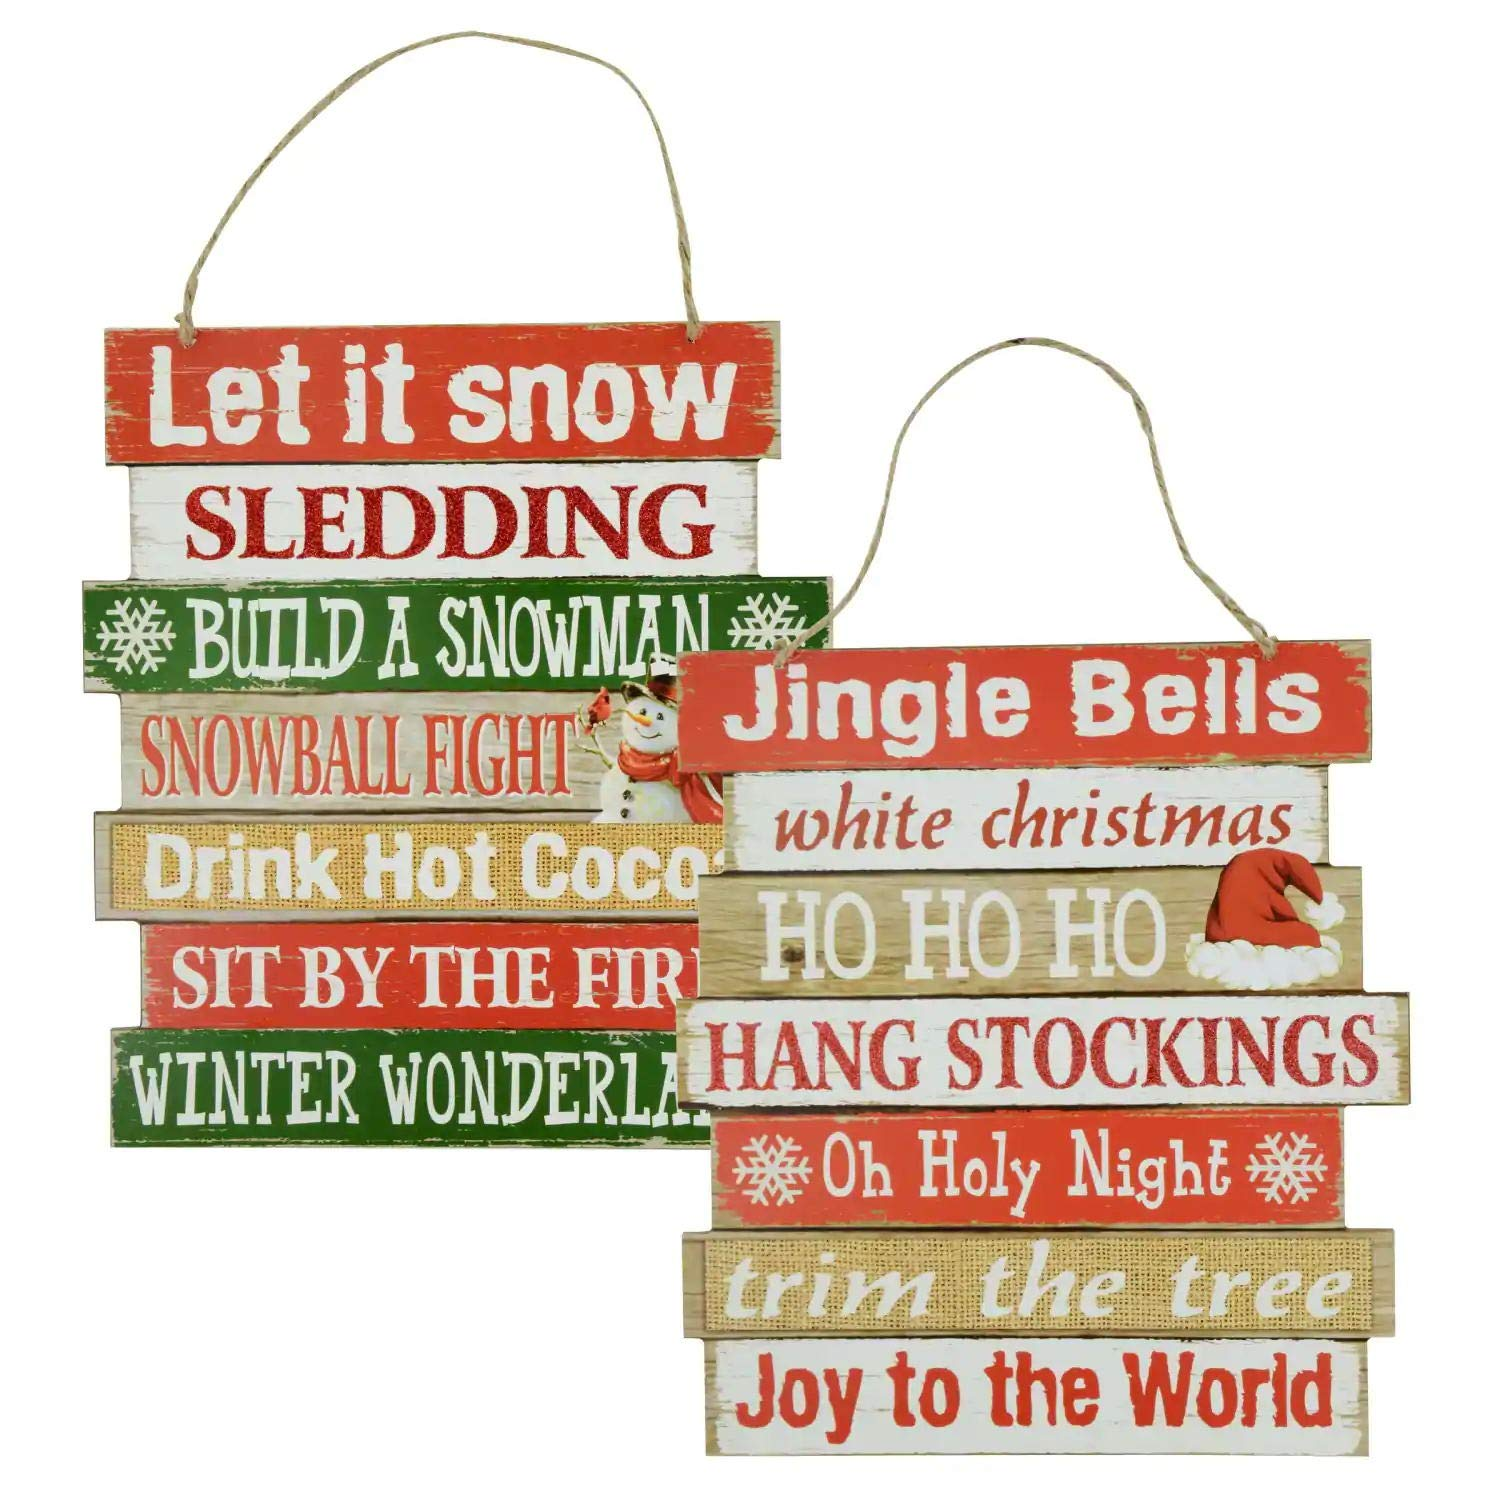 Christmas Decorations Celebrate a Holiday Wood Signs Wall Decor Farmhouse Indoor Outdoor Country Yard Porch Plaque Winter Hanging With Cord Its the most Wonderful Time Wooden Hanger Decore Set 2 Pack